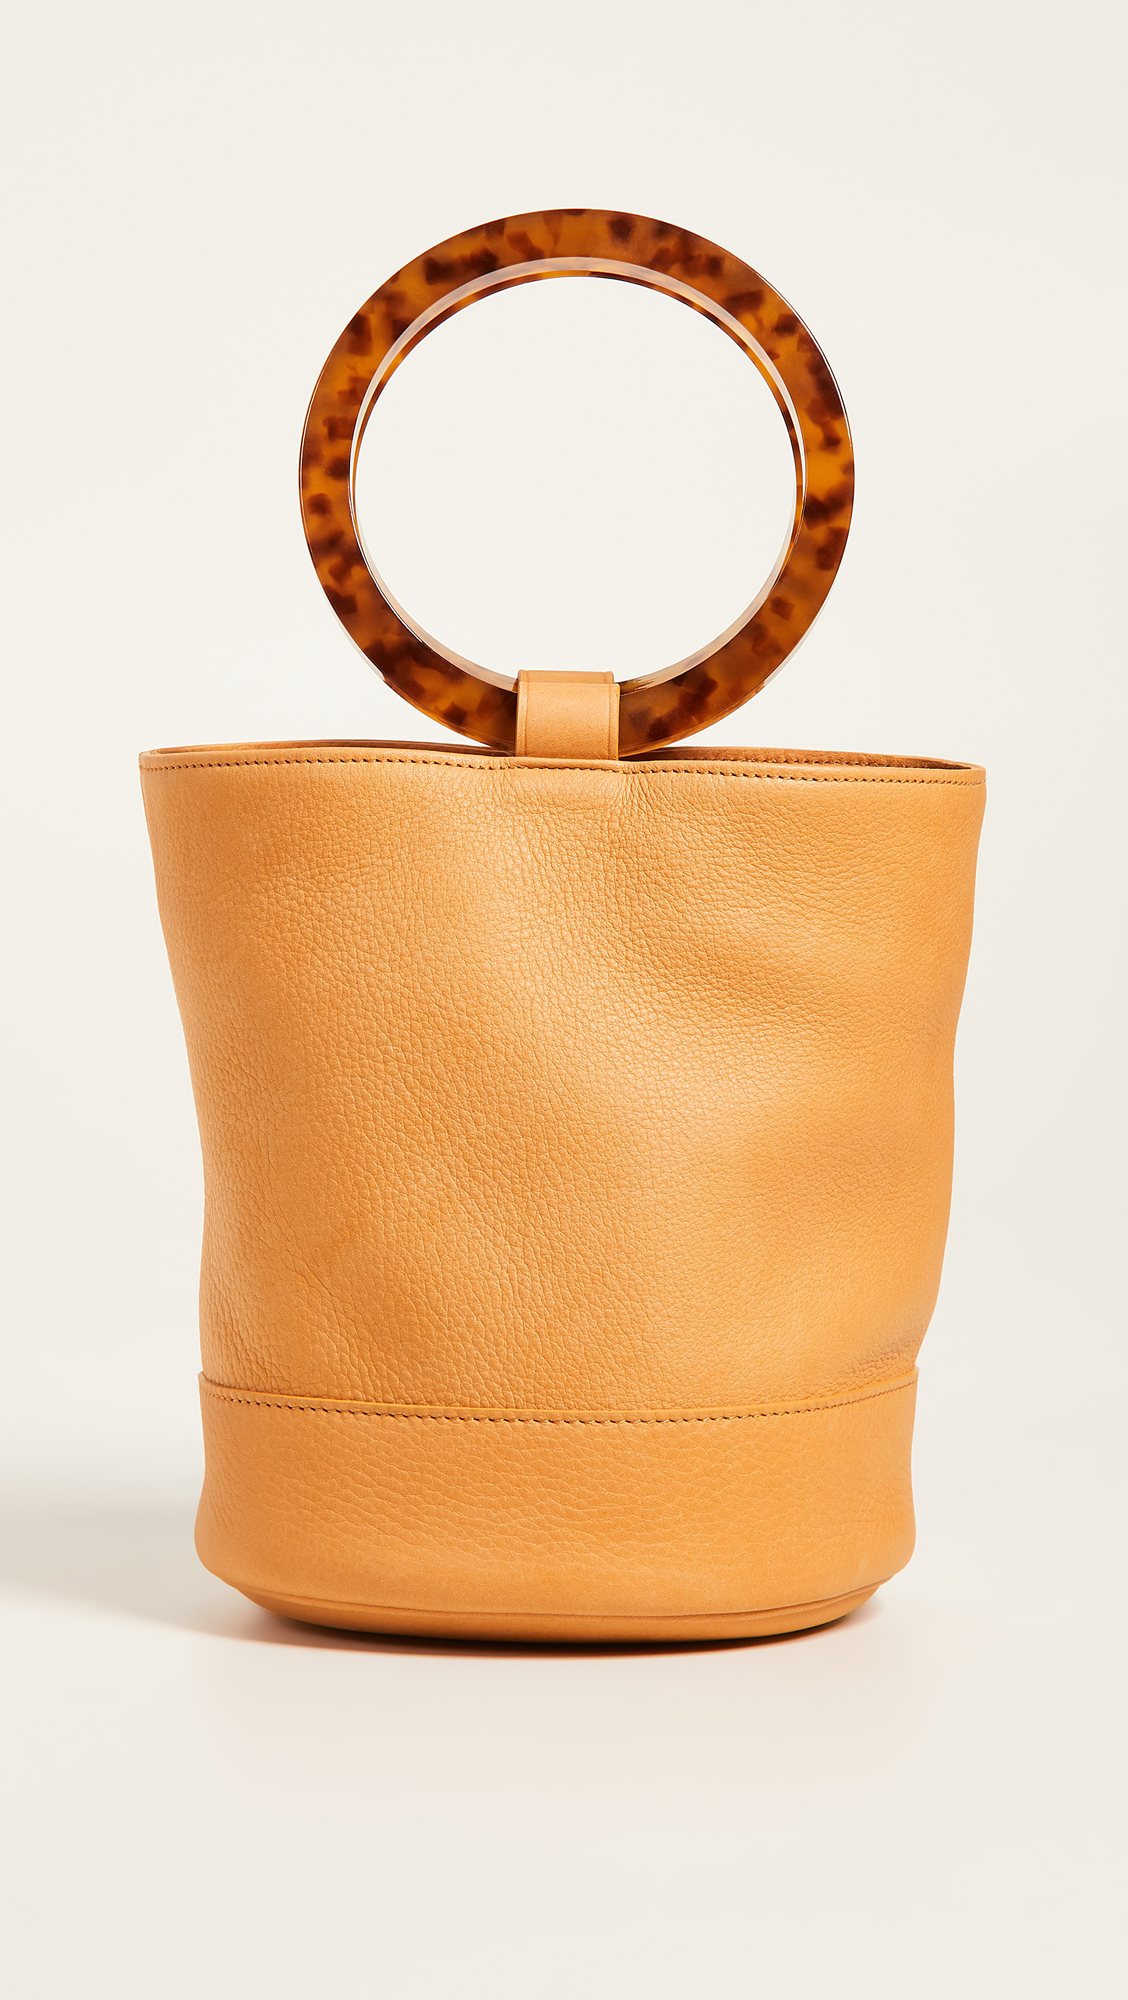 Bonsai Bag with Camel Leather and Round Tortoiseshell Handles